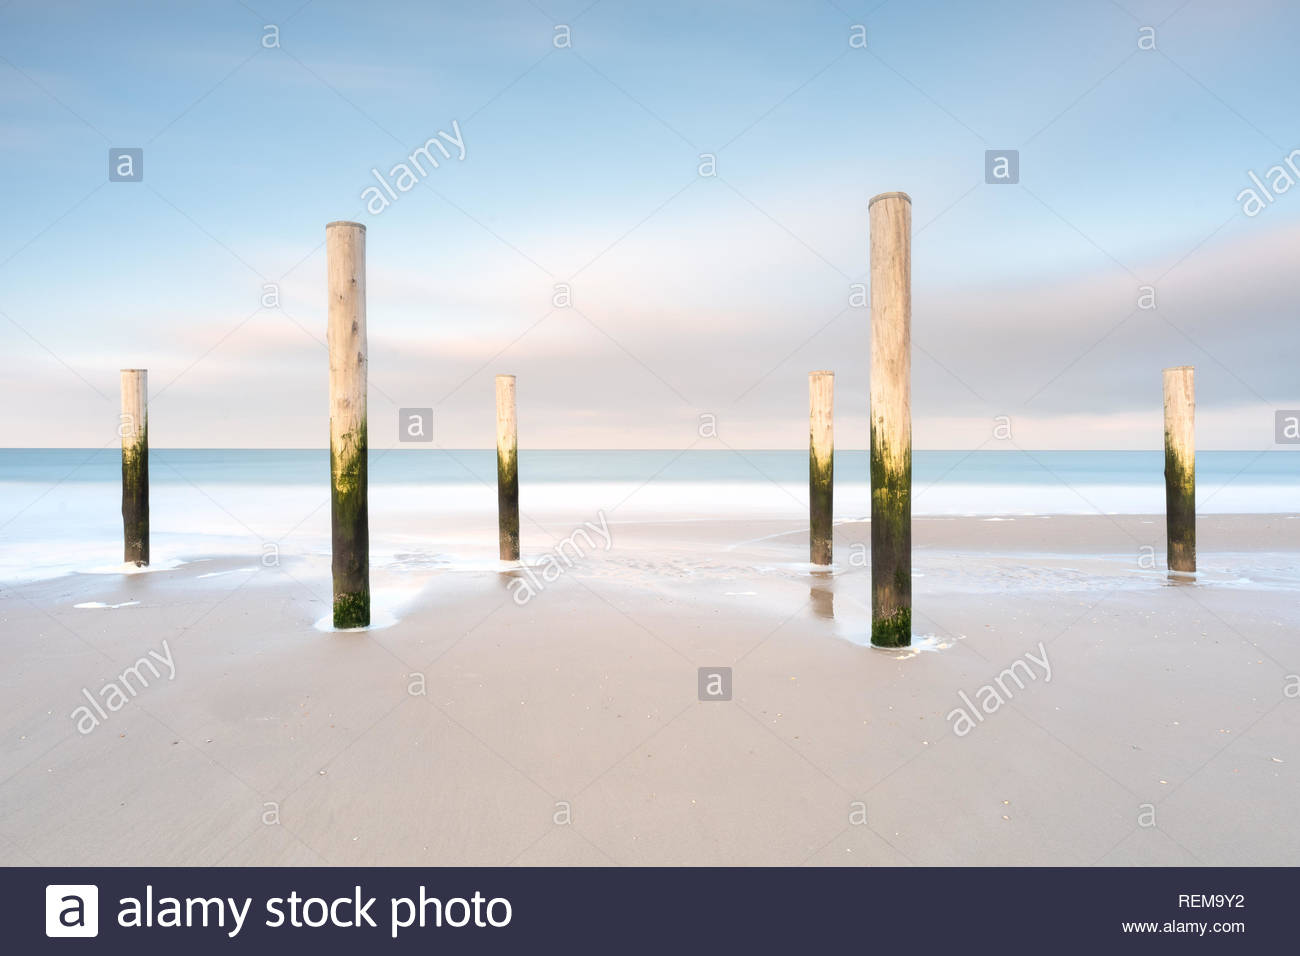 Poles on a beach with blue sky long exposure landscape Stock Photo